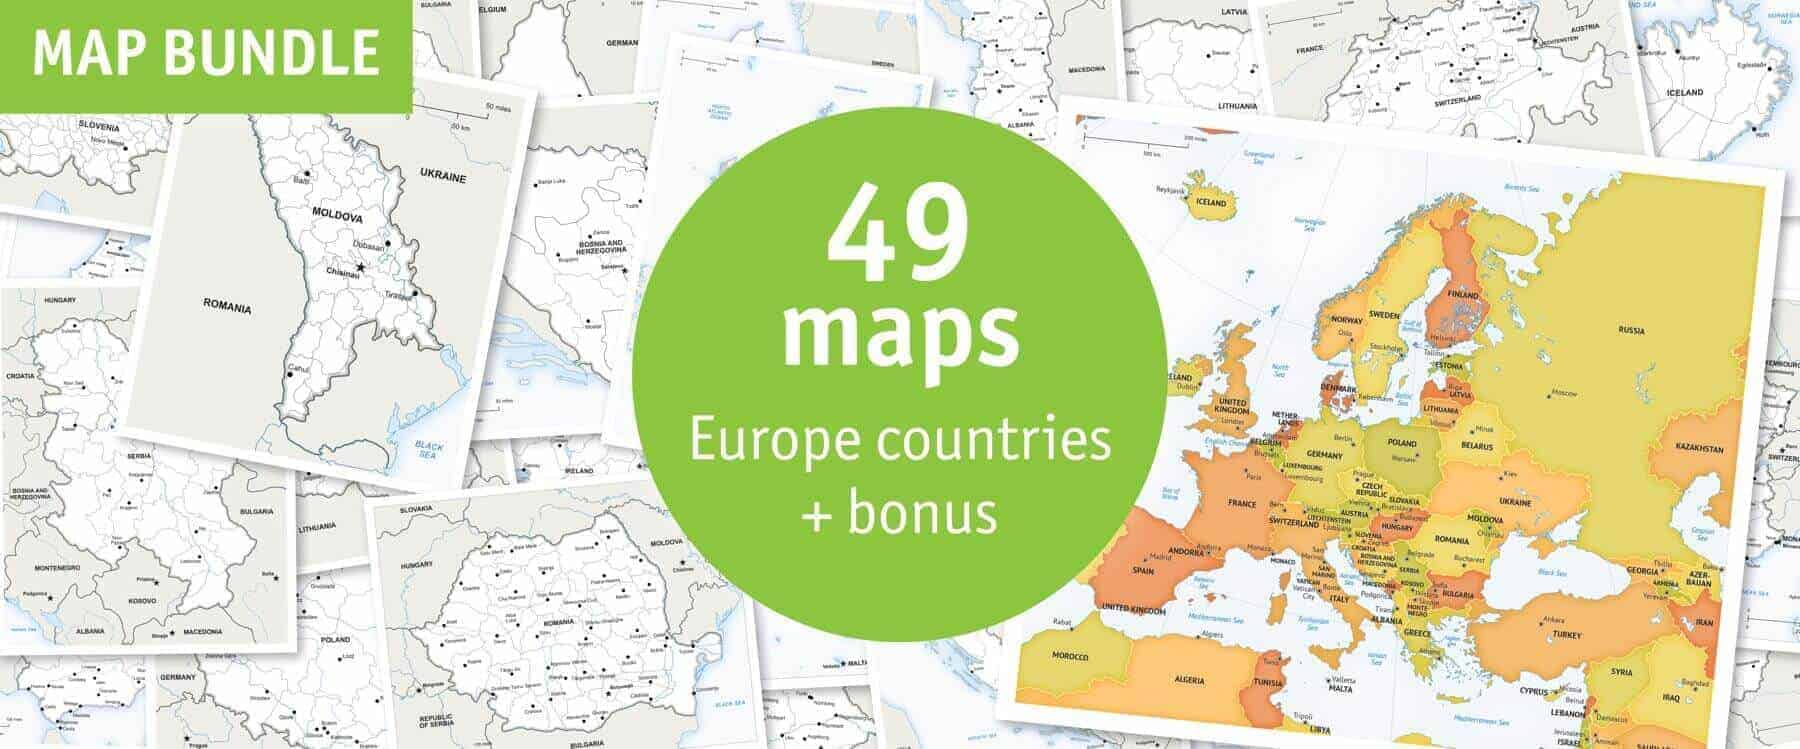 Europe Countries 49 MAPS Bundle Discount